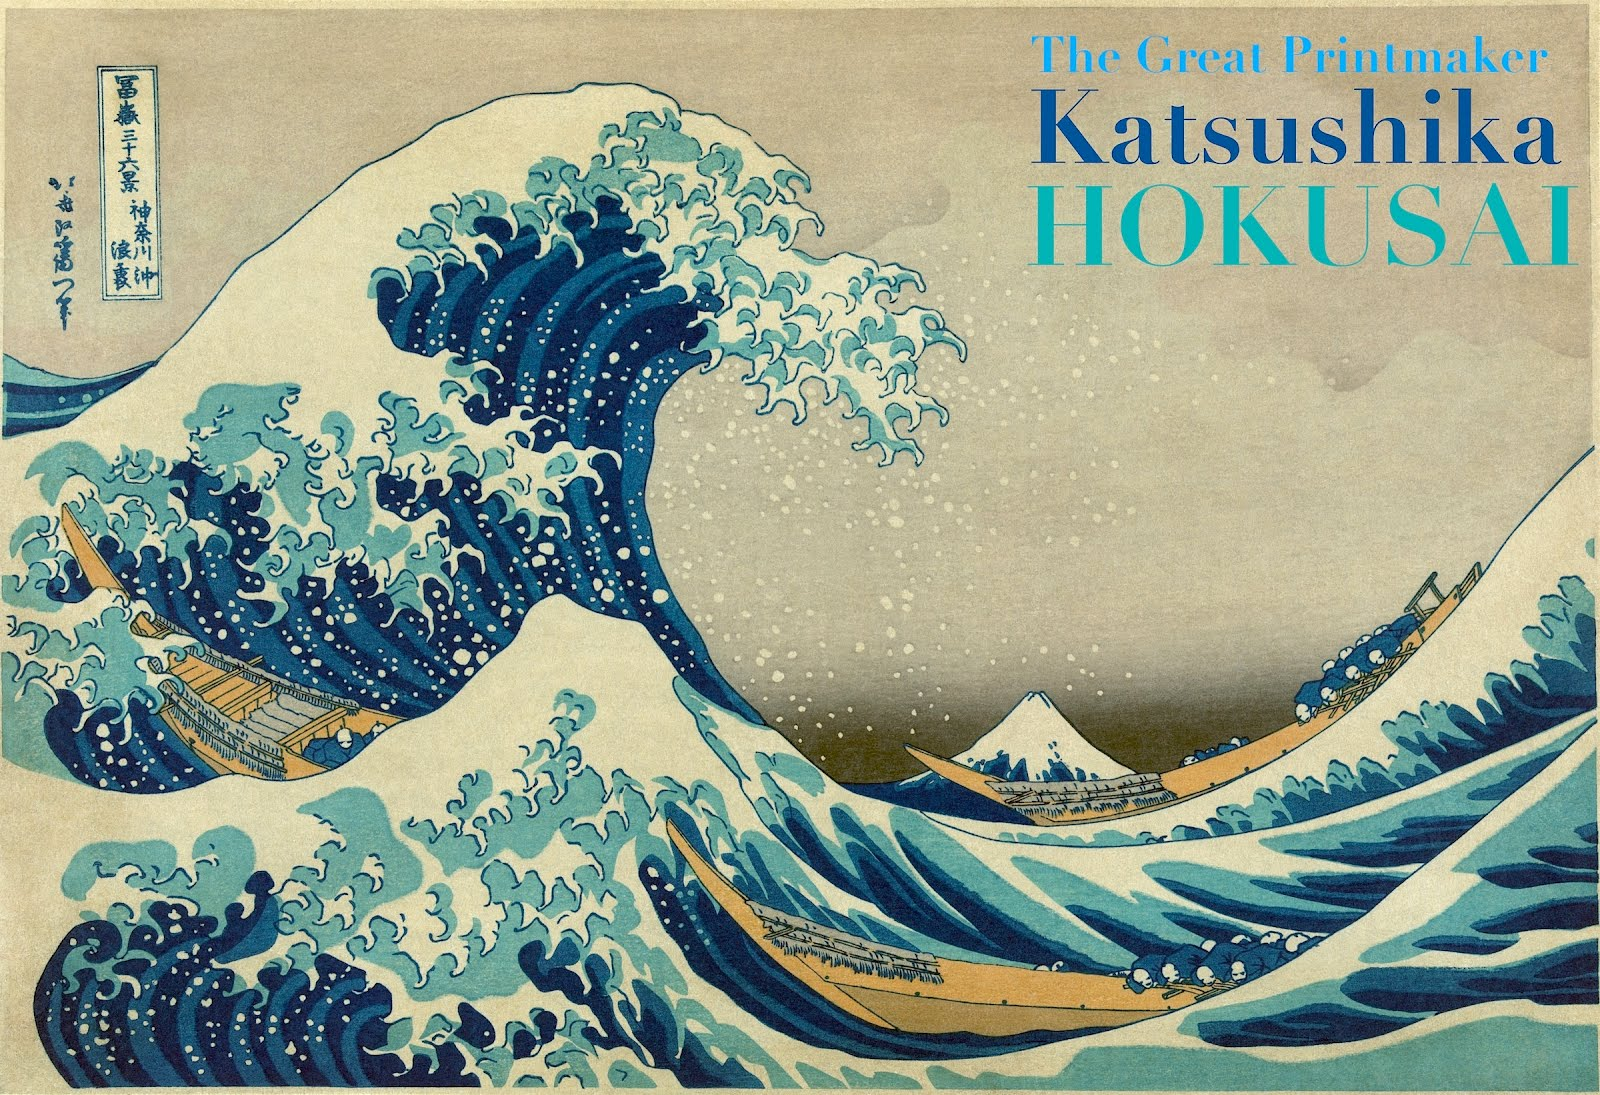 KATSUSHIKA HOKUSAI: Legendary Print Maker + Japanese Painter